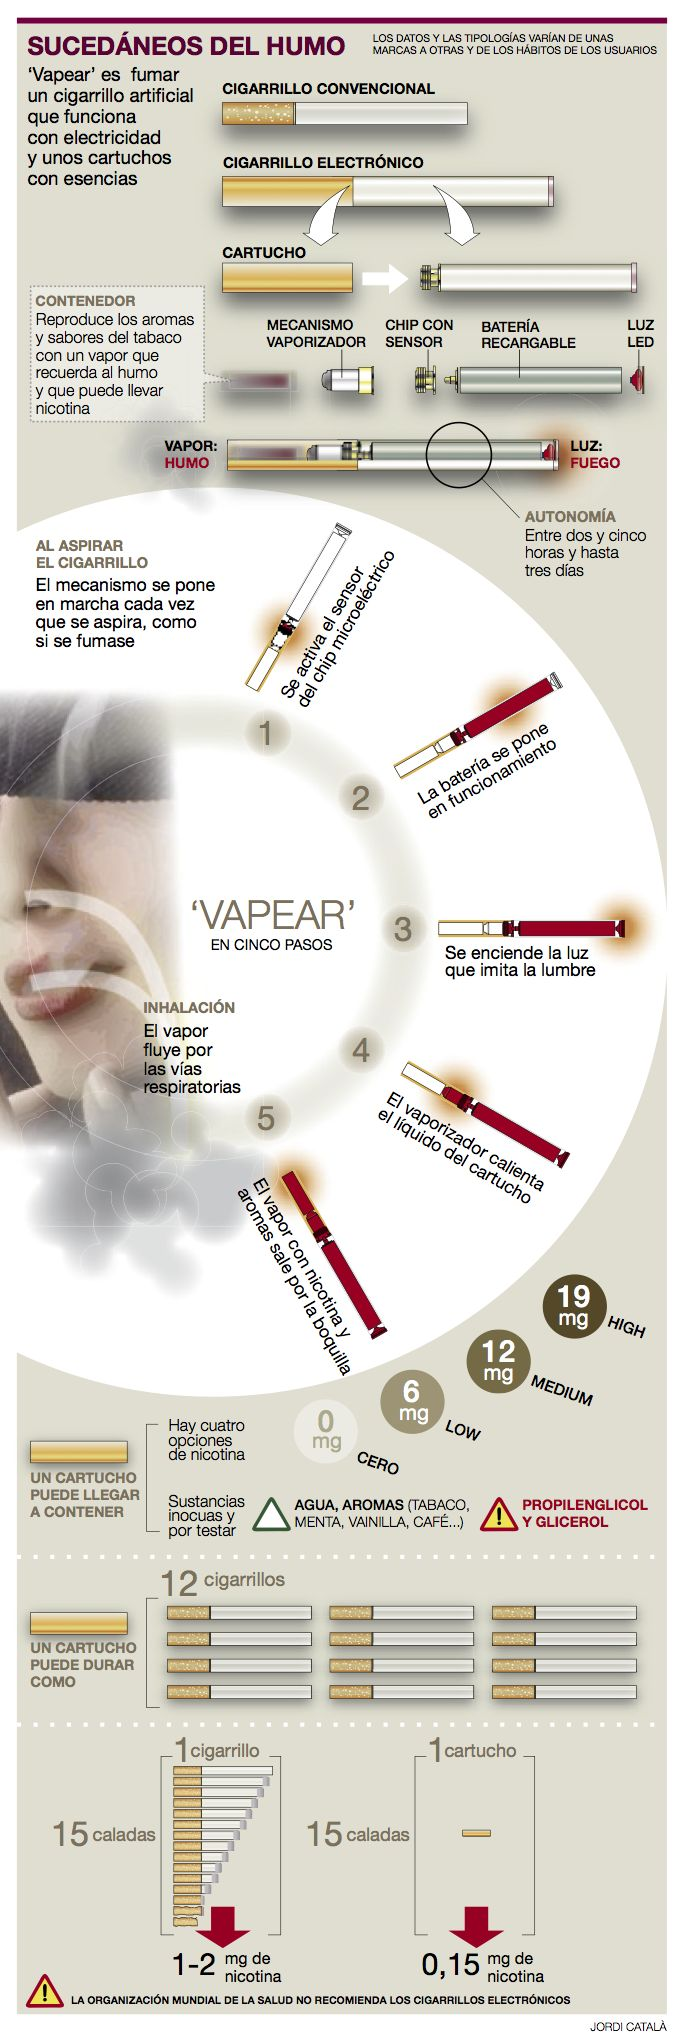 If you are thinking of giving up smoking, that is fantastic. The health concerns surrounding smoking are well documented, and it is a brave decision to give http://electroniccigaretteflavors.com/v2-cigs-electronic-cigarette-review  v2 e cig reviews, V2 Cigs